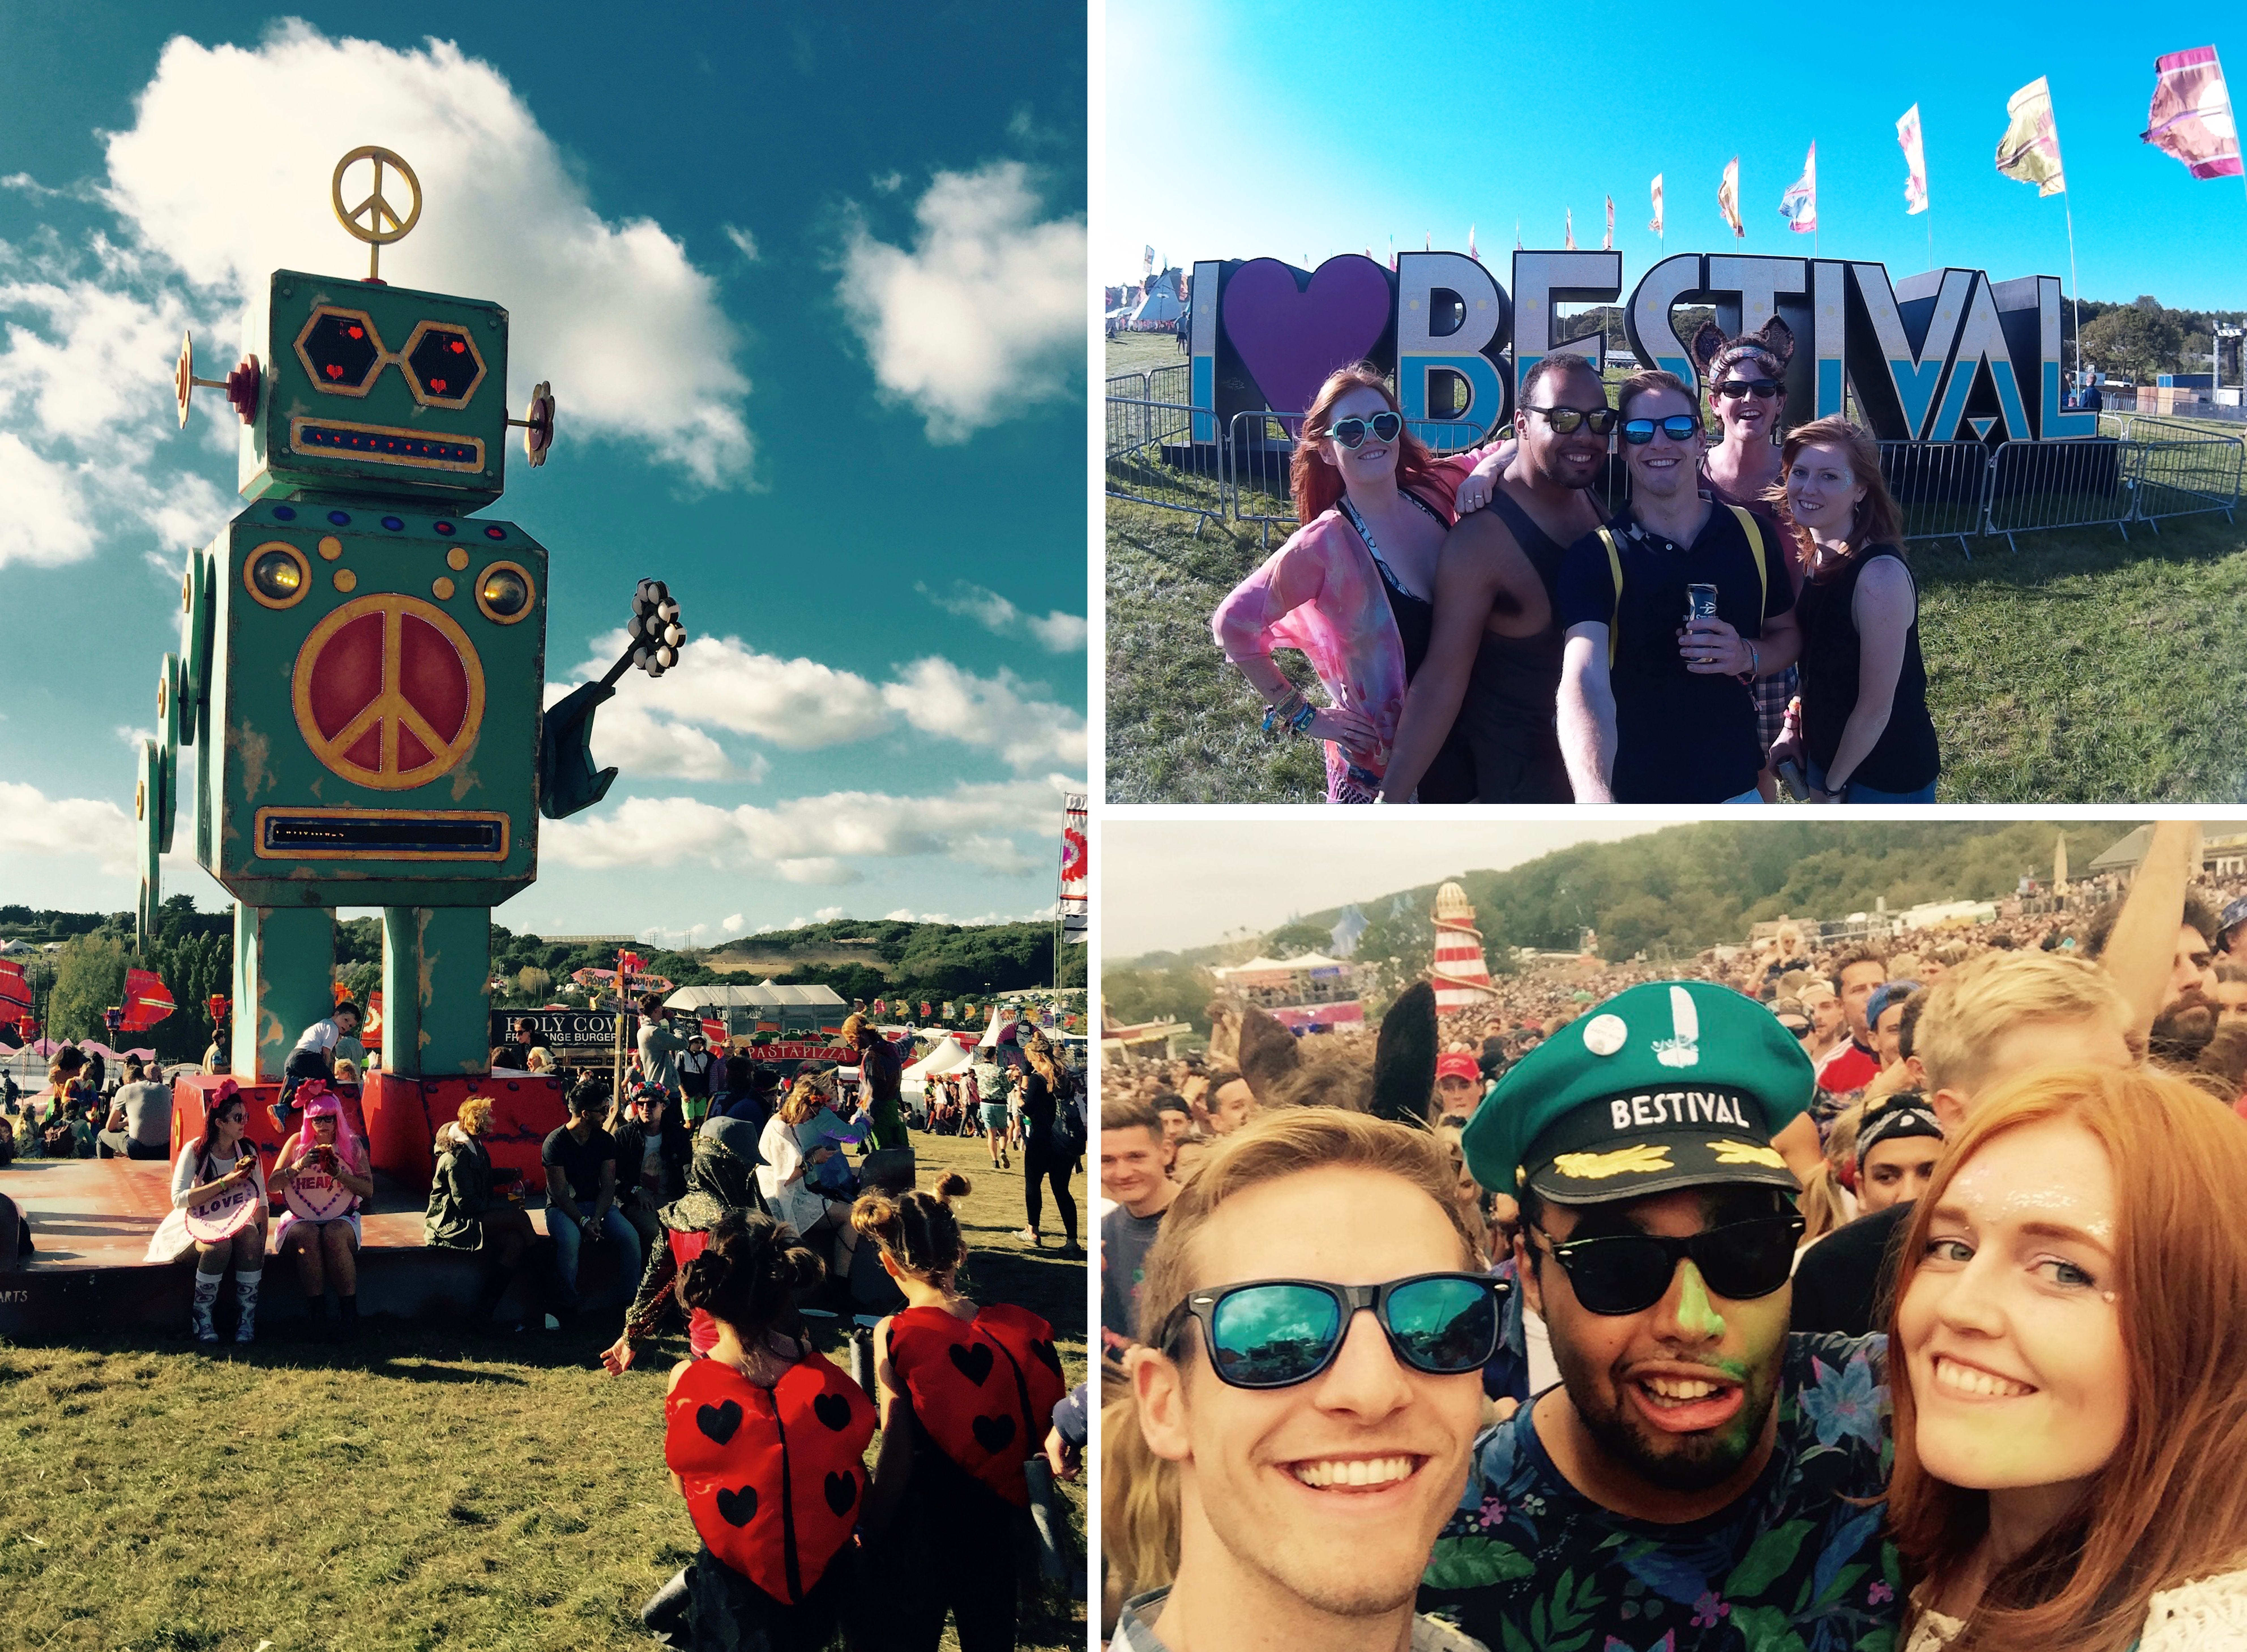 Montage photos giant Bestival sign huge robot peace festival captains hat friends